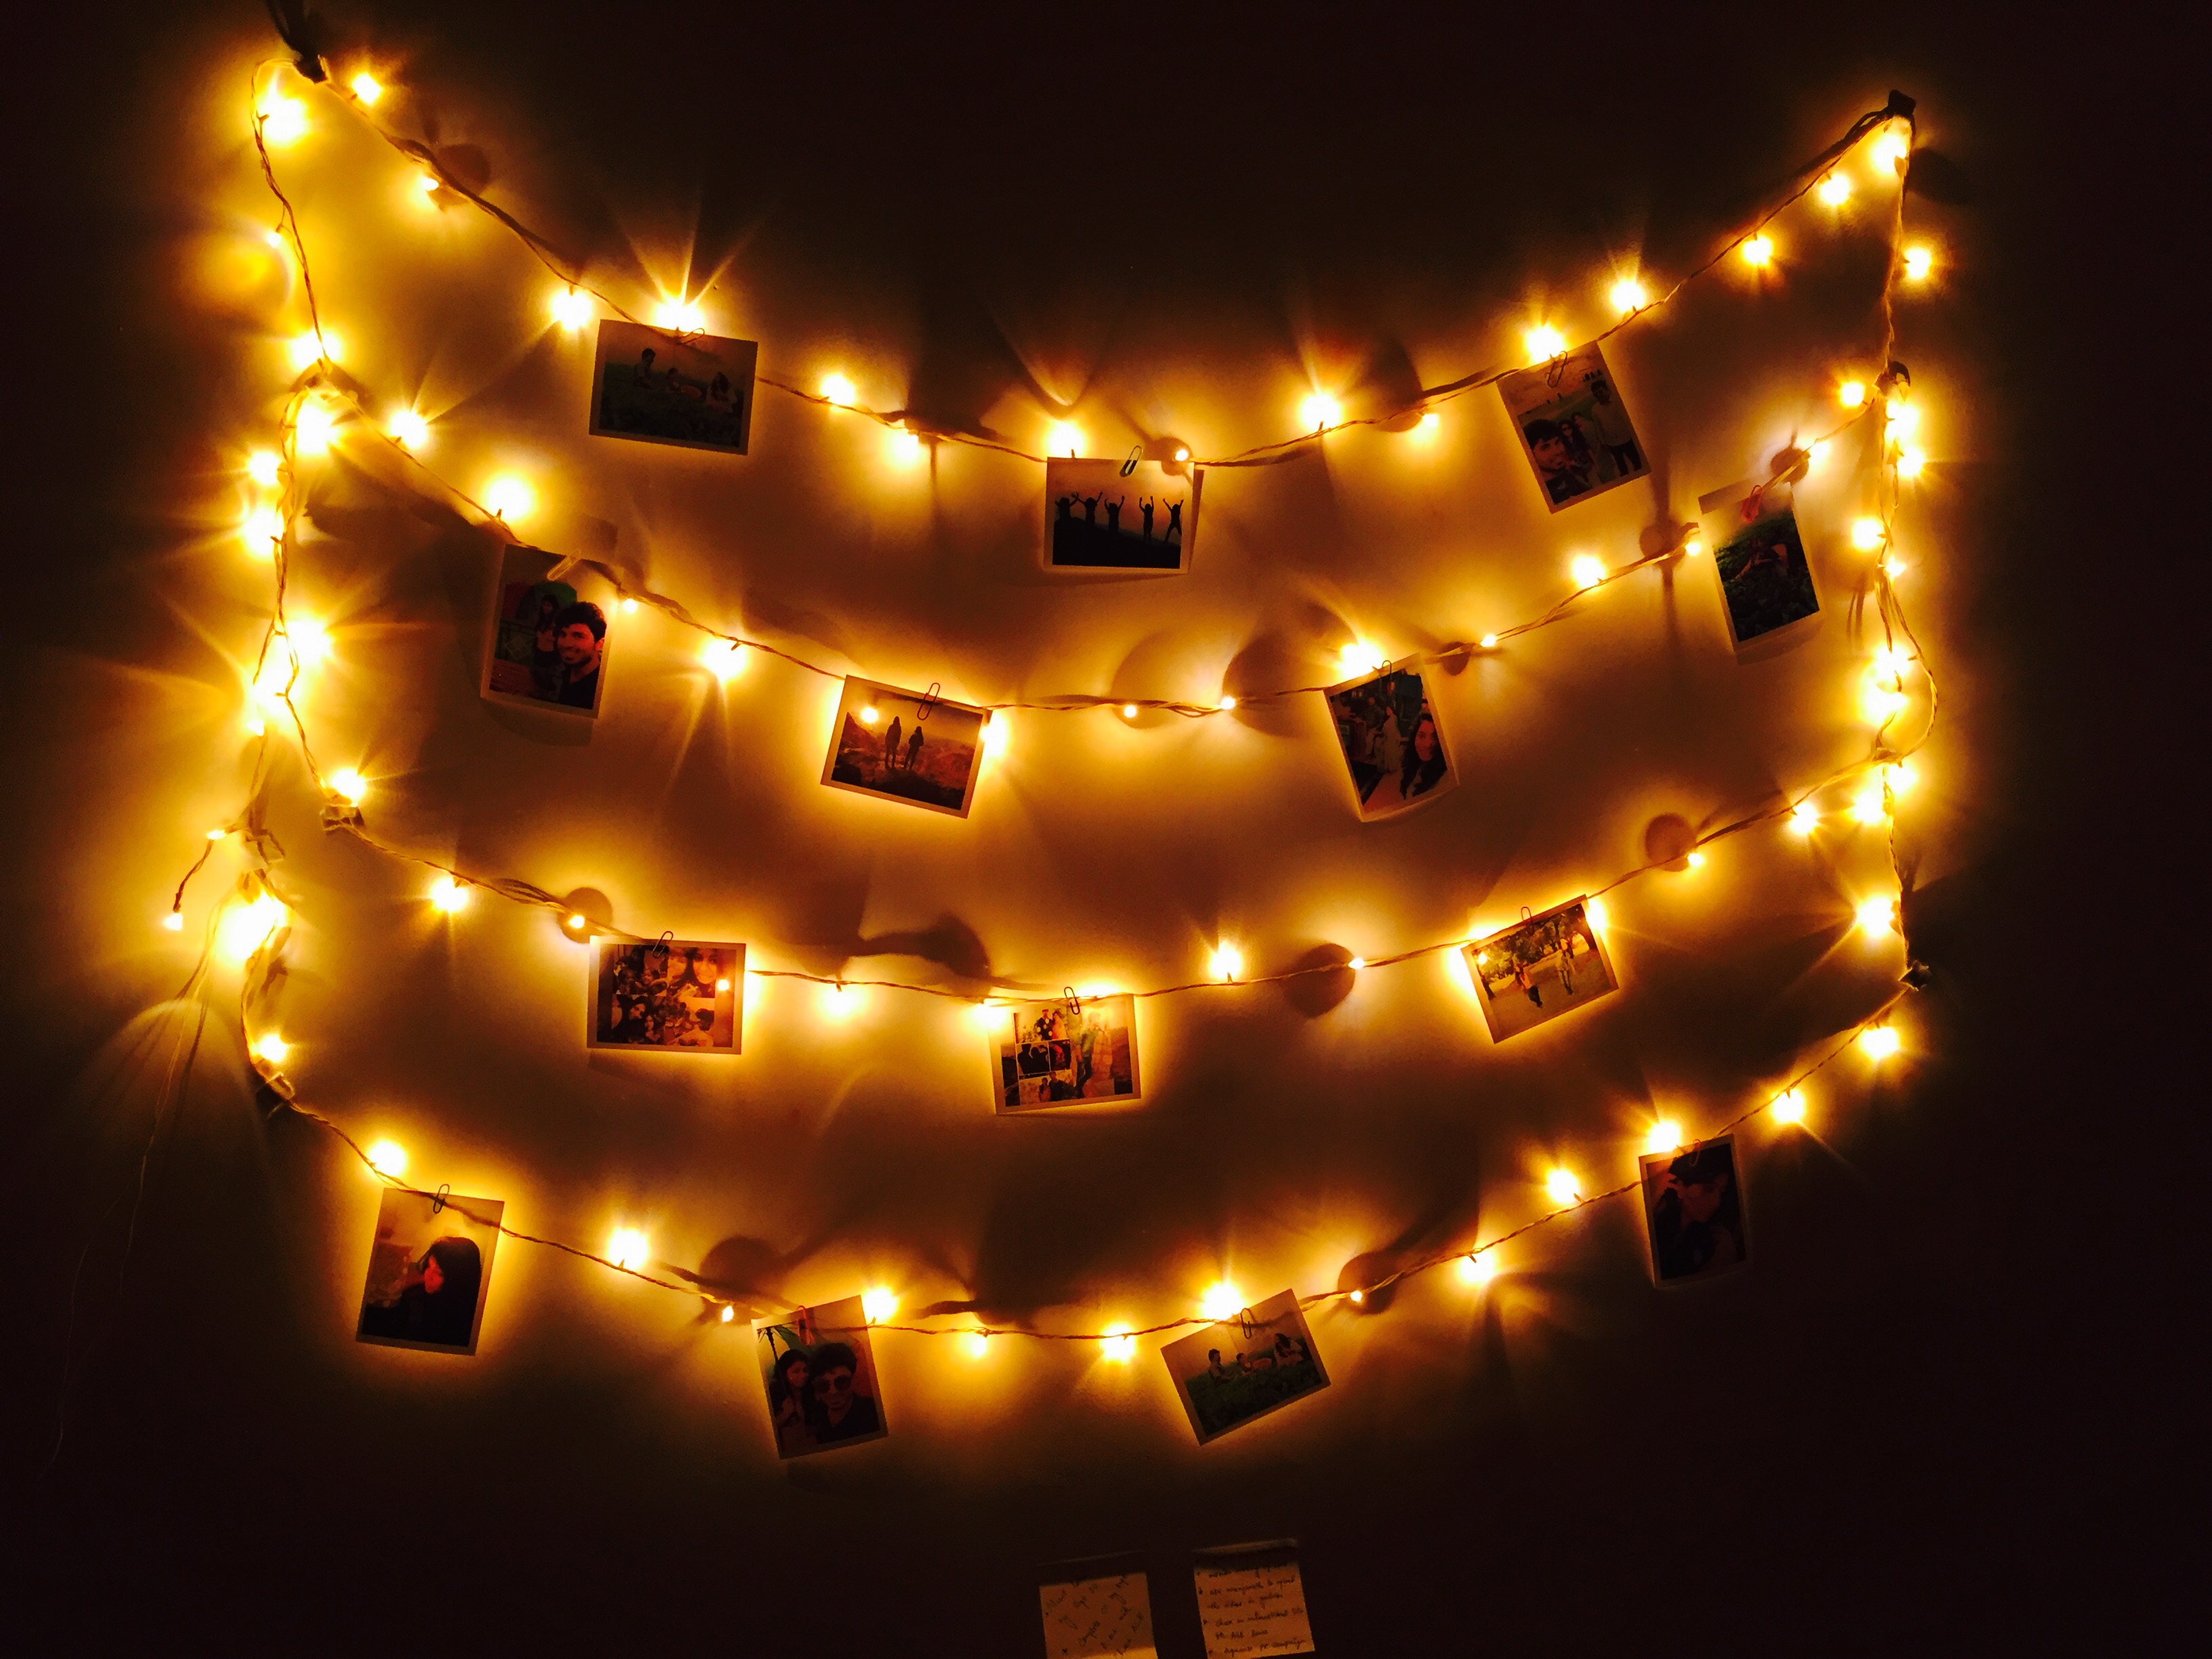 Cool Iphone 4 Wallpapers Hd 1000 Beautiful Fairy Lights Photos 183 Pexels 183 Free Stock